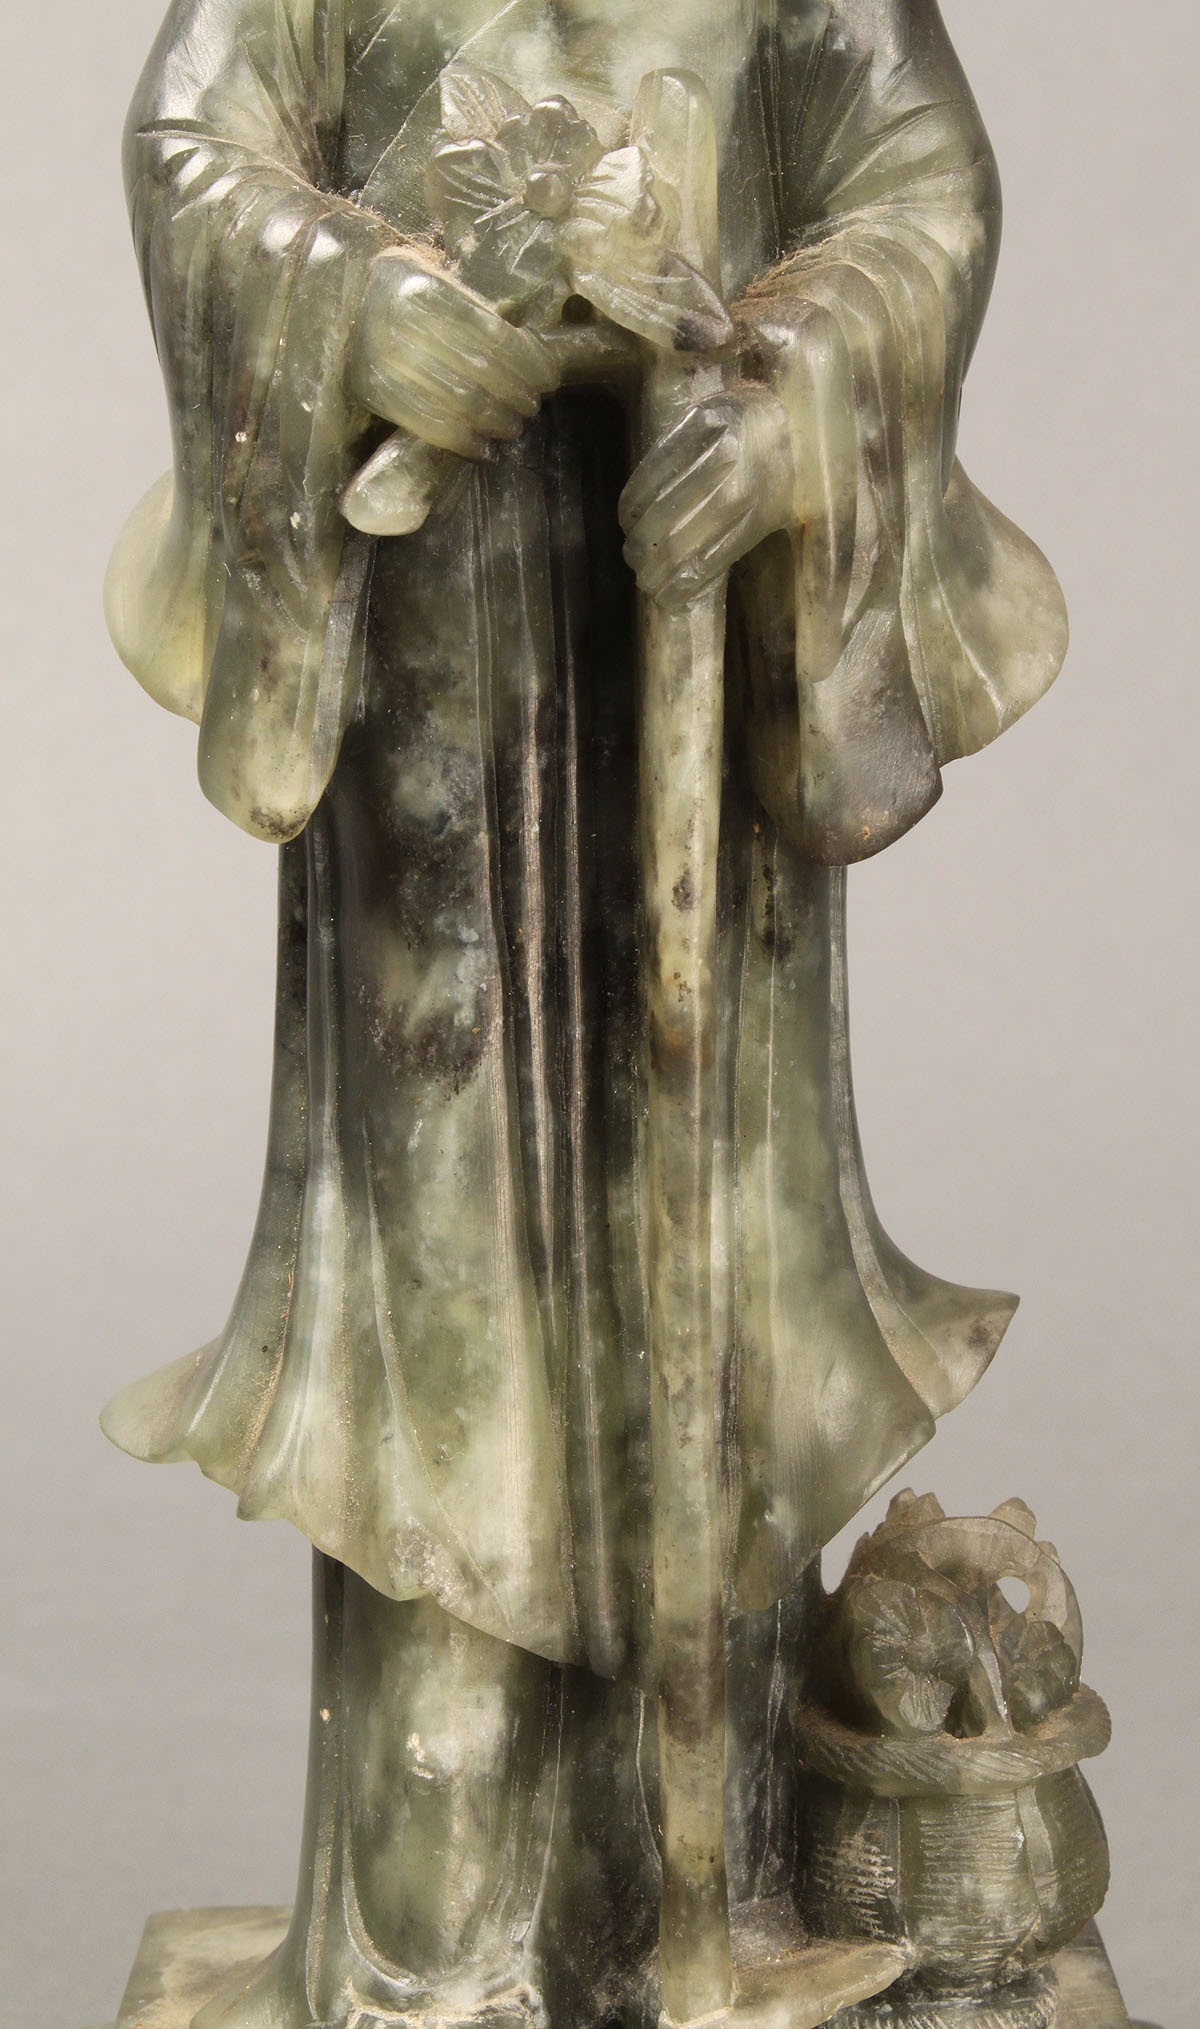 Lot 420 Chinese Carved Jade Or Soapstone Figure